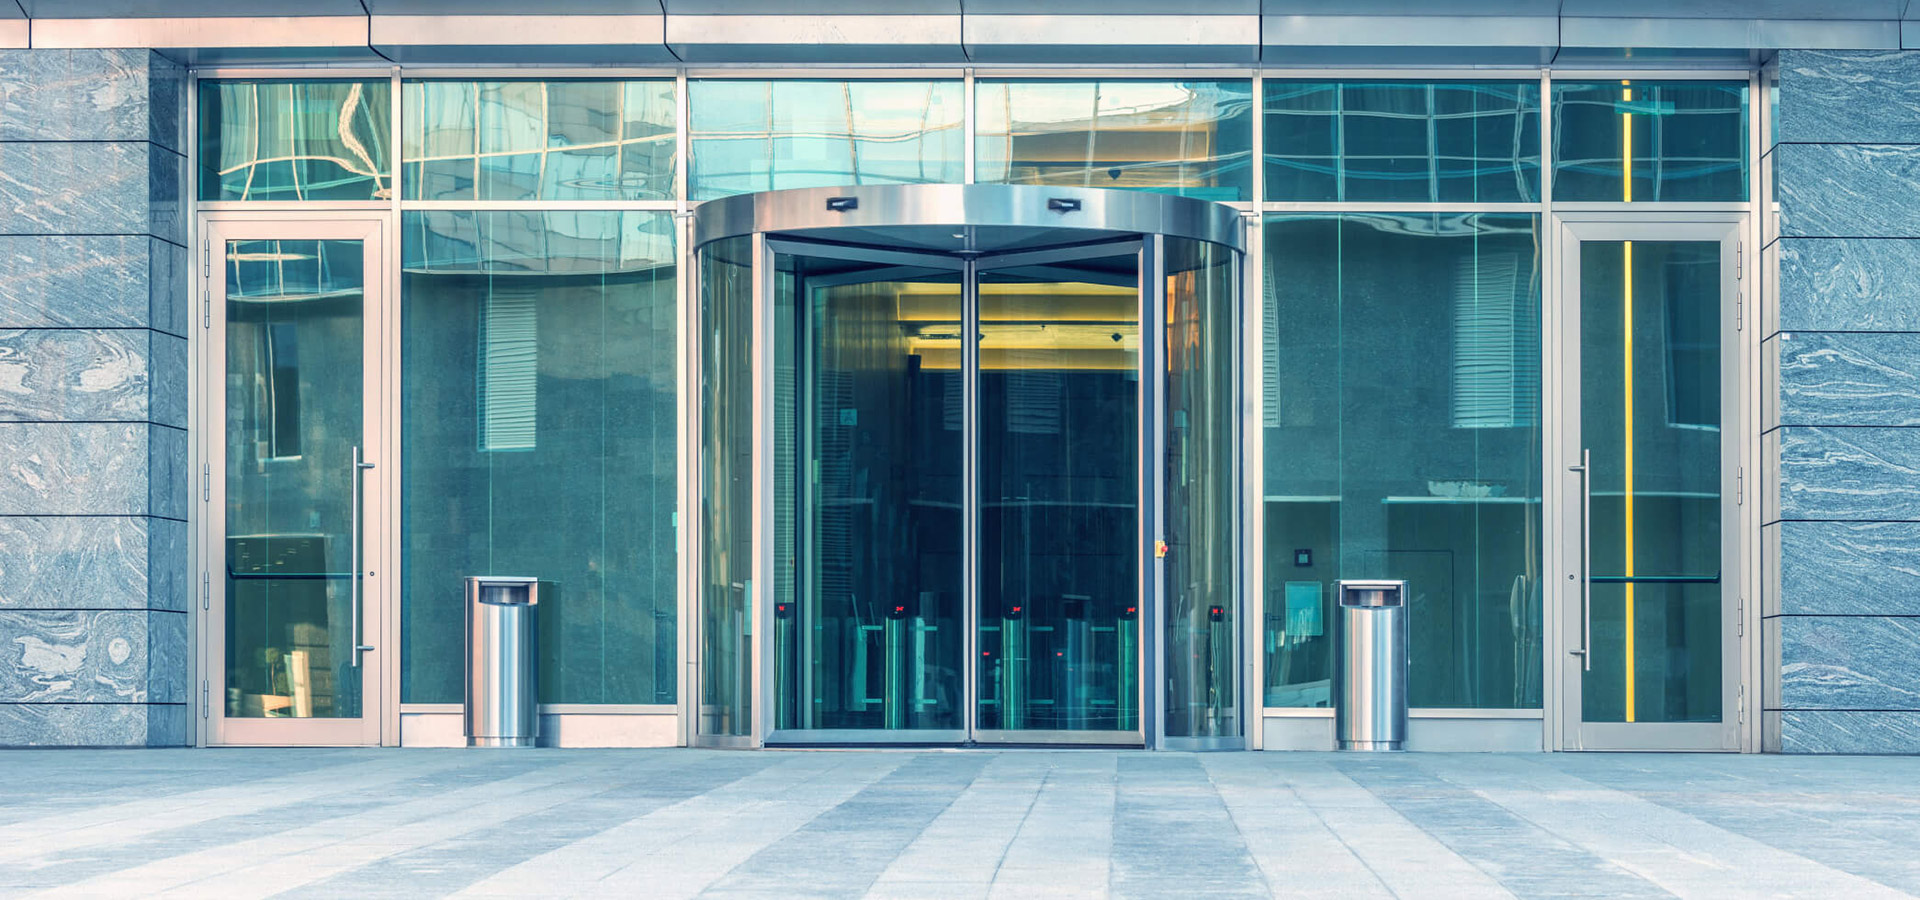 Alluminium Windows & Doors - Shopfronts - Milton Keynes Glass